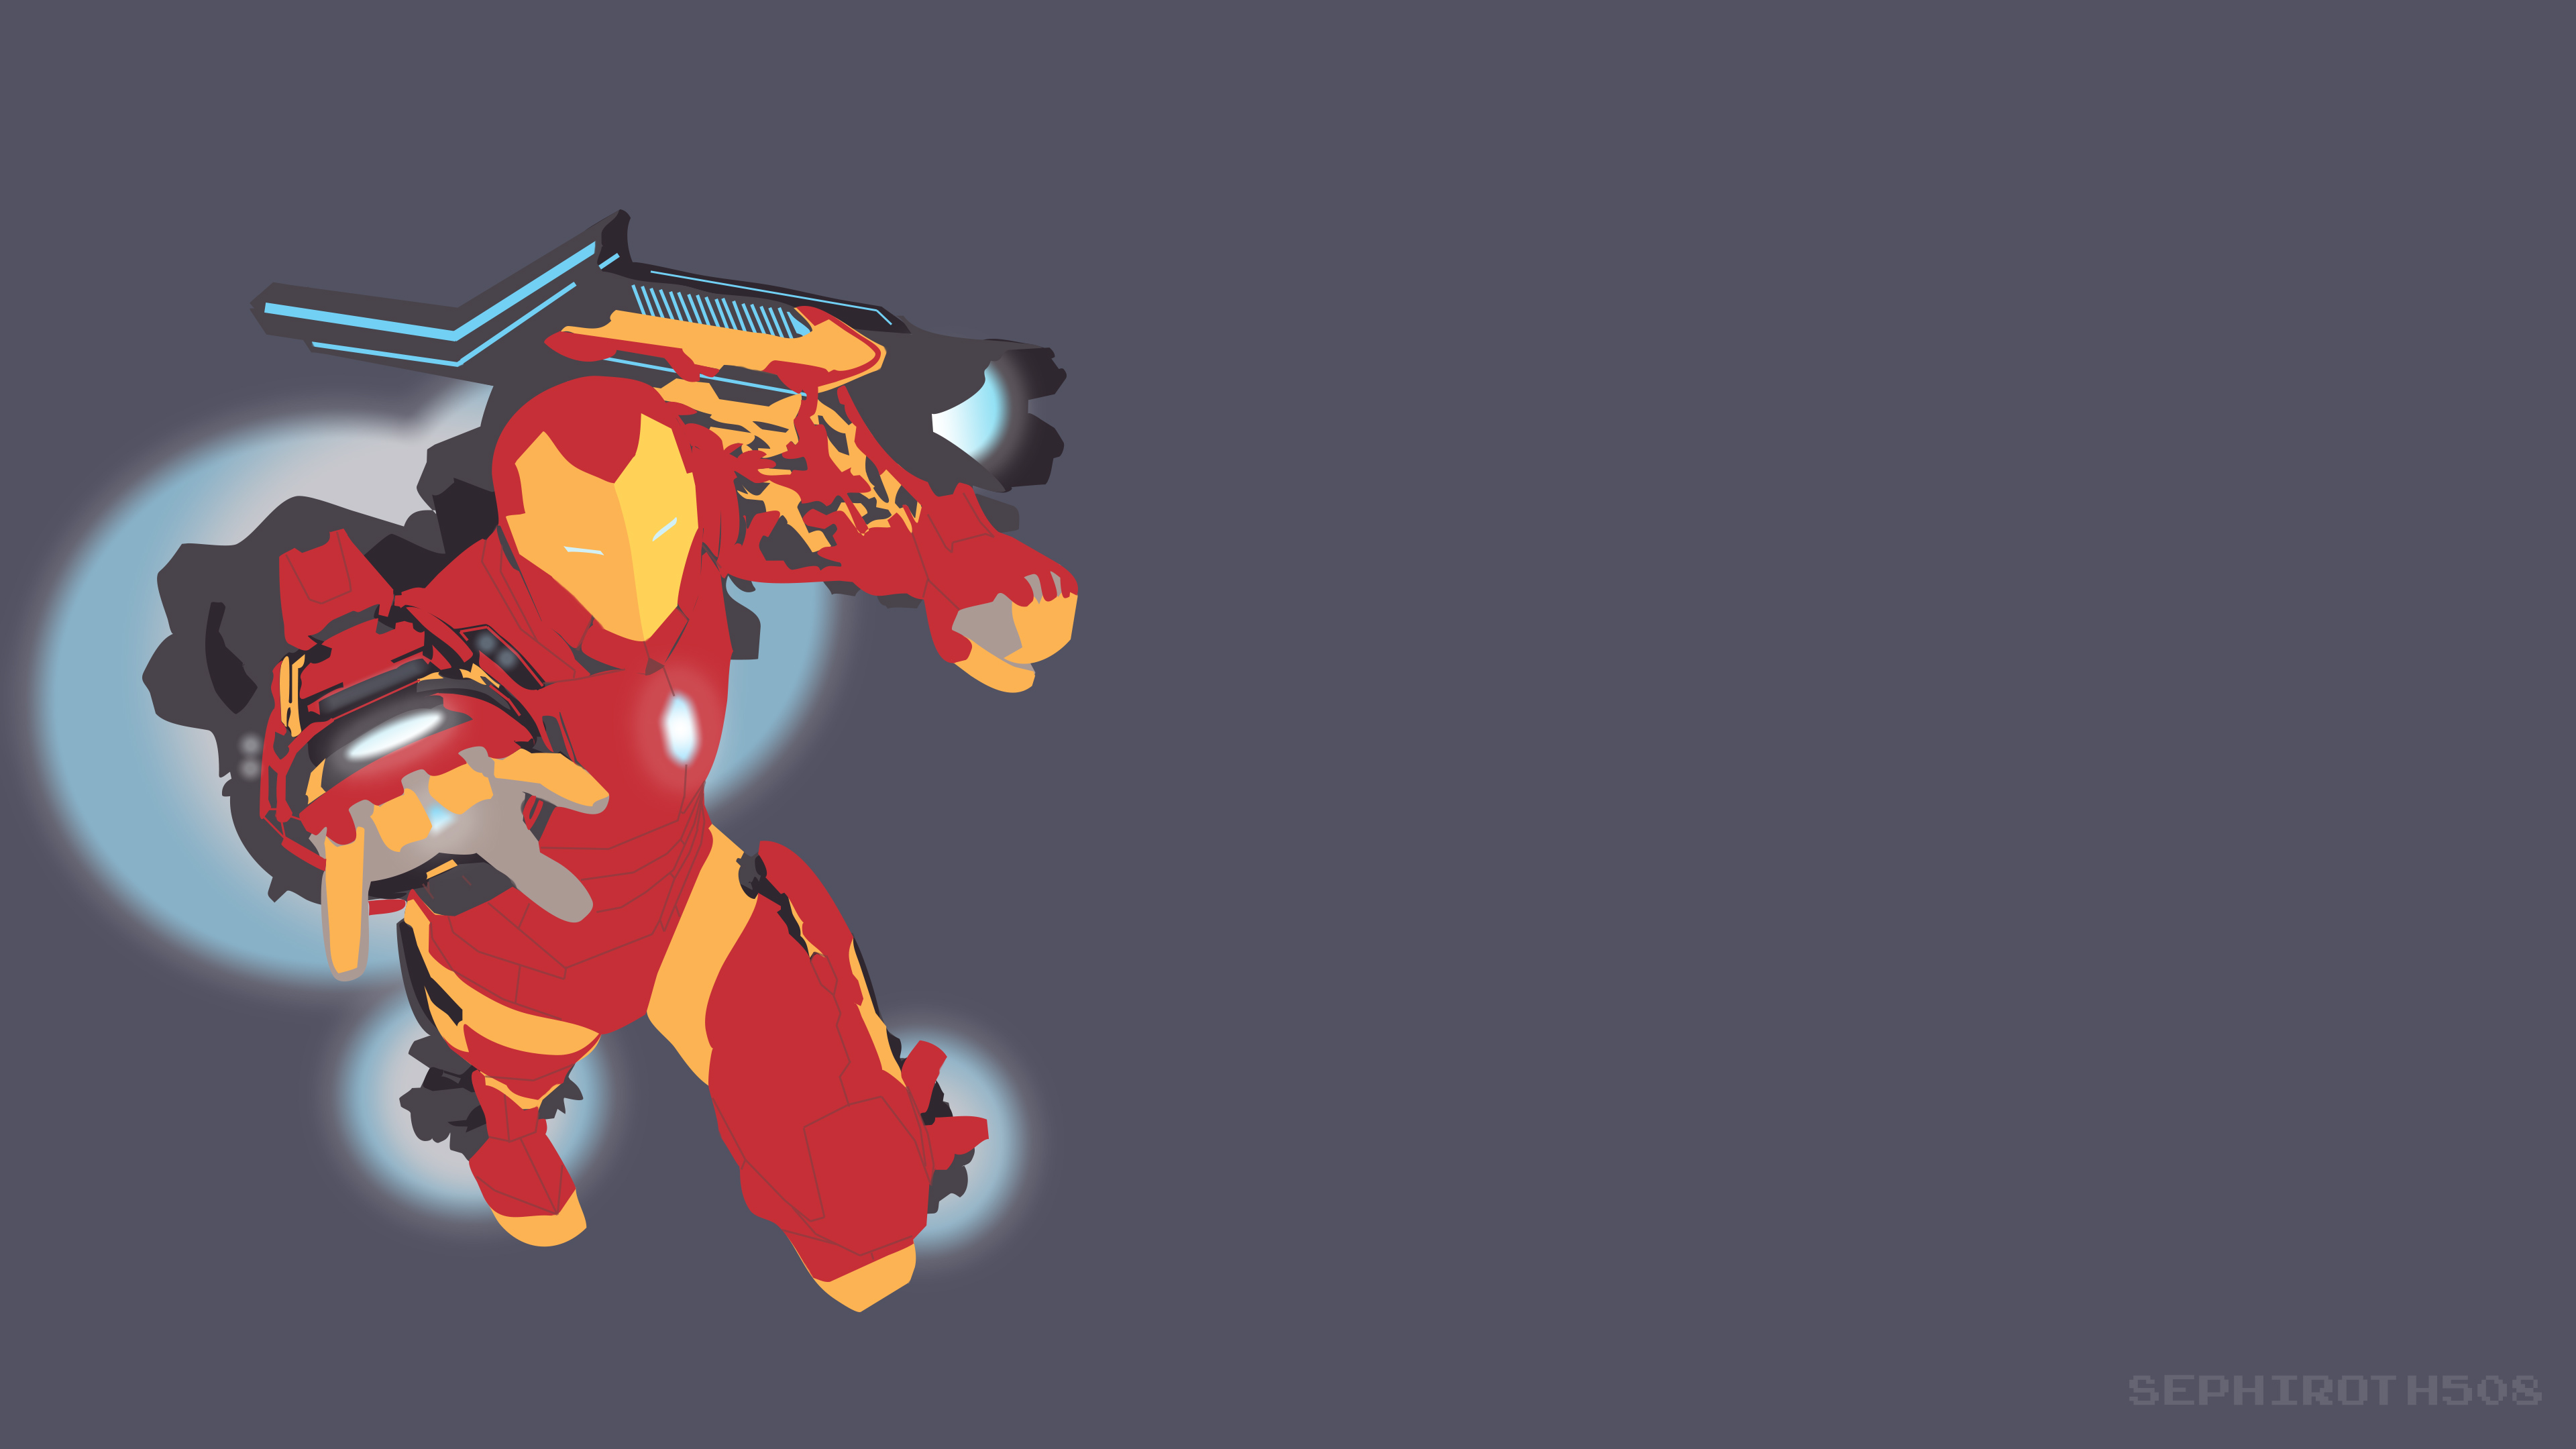 3840x2160 Wallpaper Iron Man Vector 5k 4k Wallpapers, 5k Wallpapers, Artist